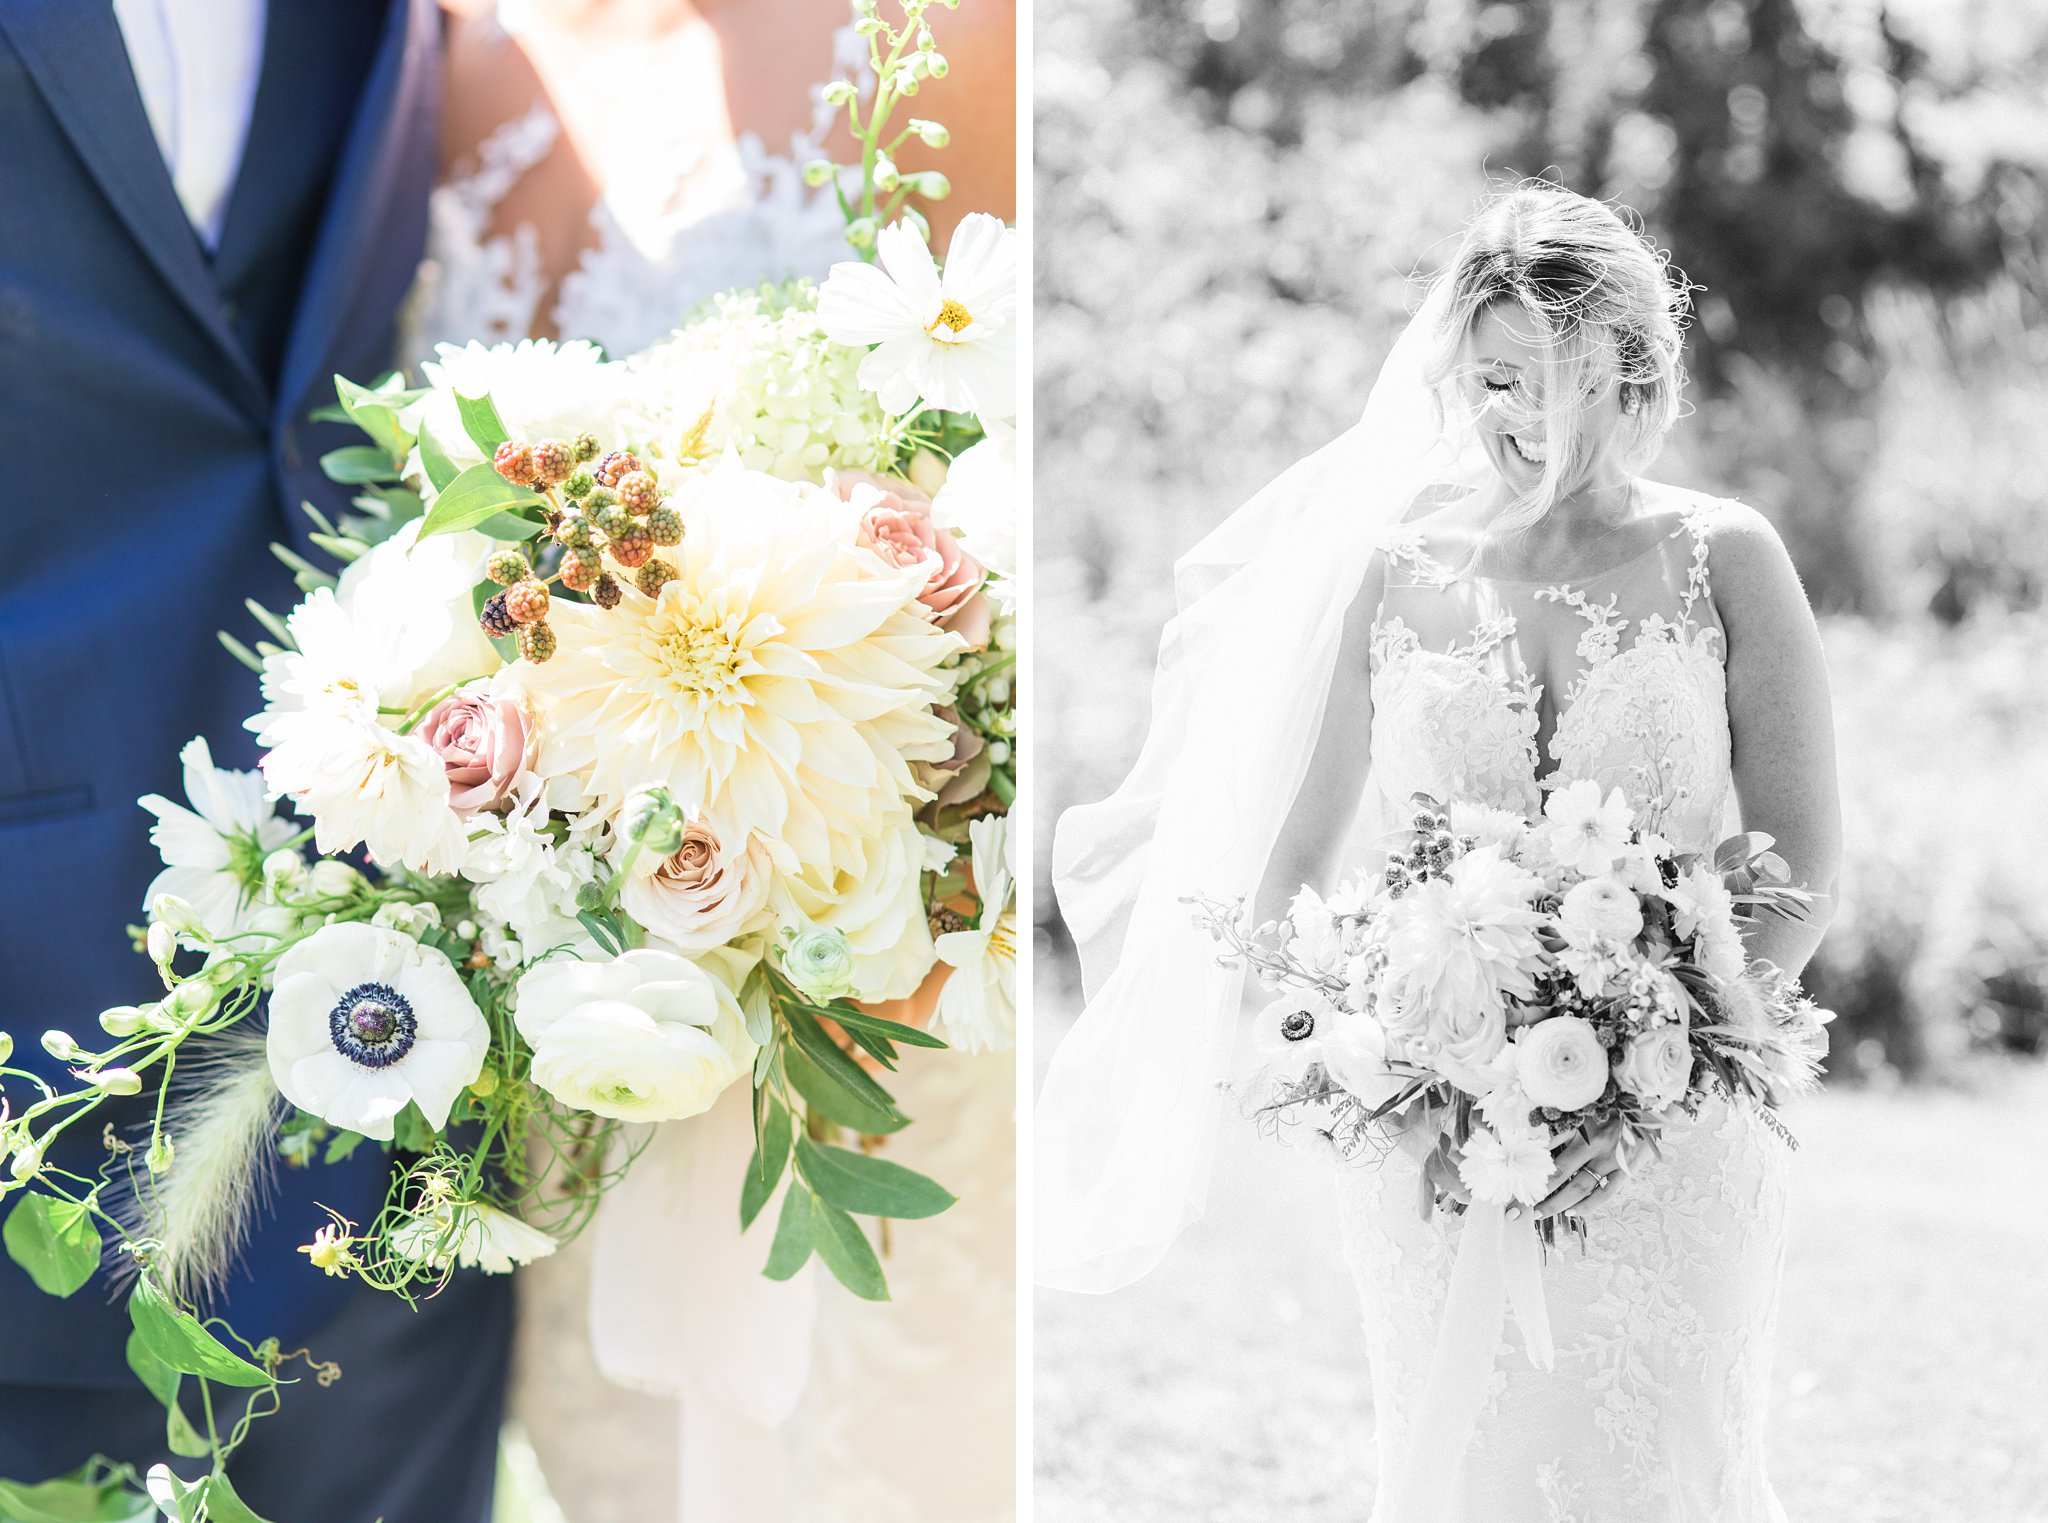 Anemone bouquet, white, greenery, bridal, Private Estate Wedding Photos, Amy Pinder Photography